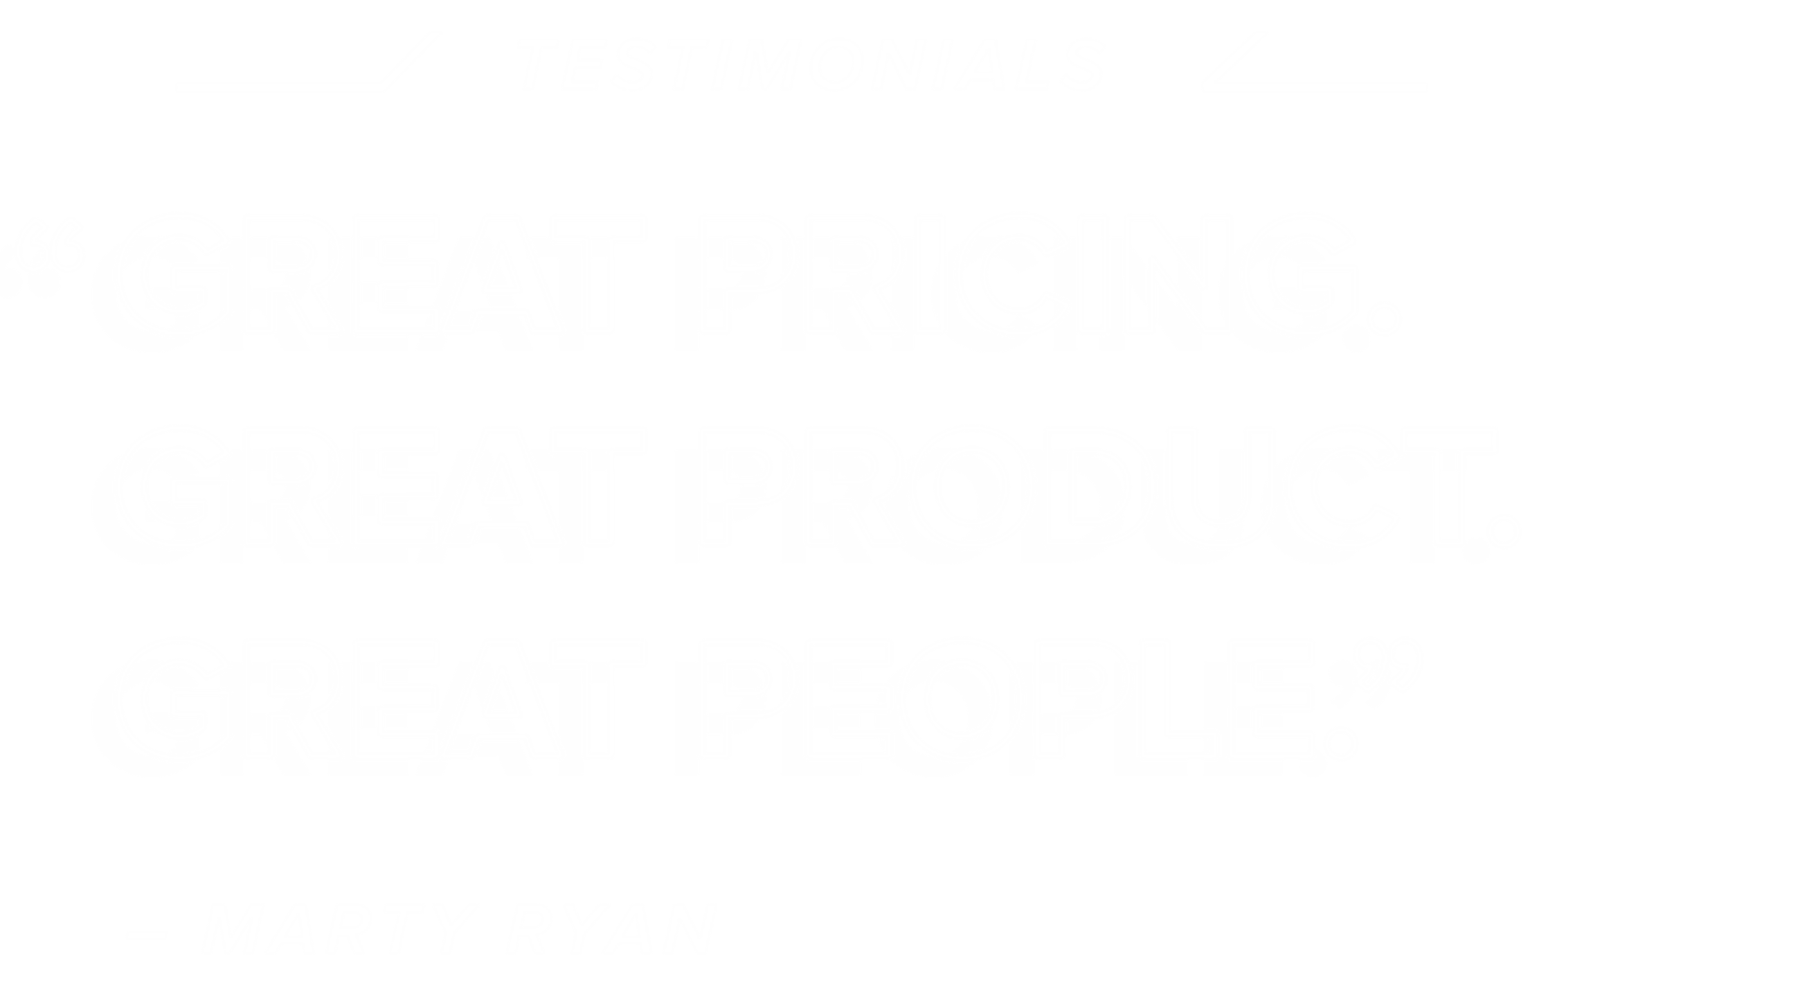 Testimonials - Great pricing. Great product. Great people. - MARTY RYAN